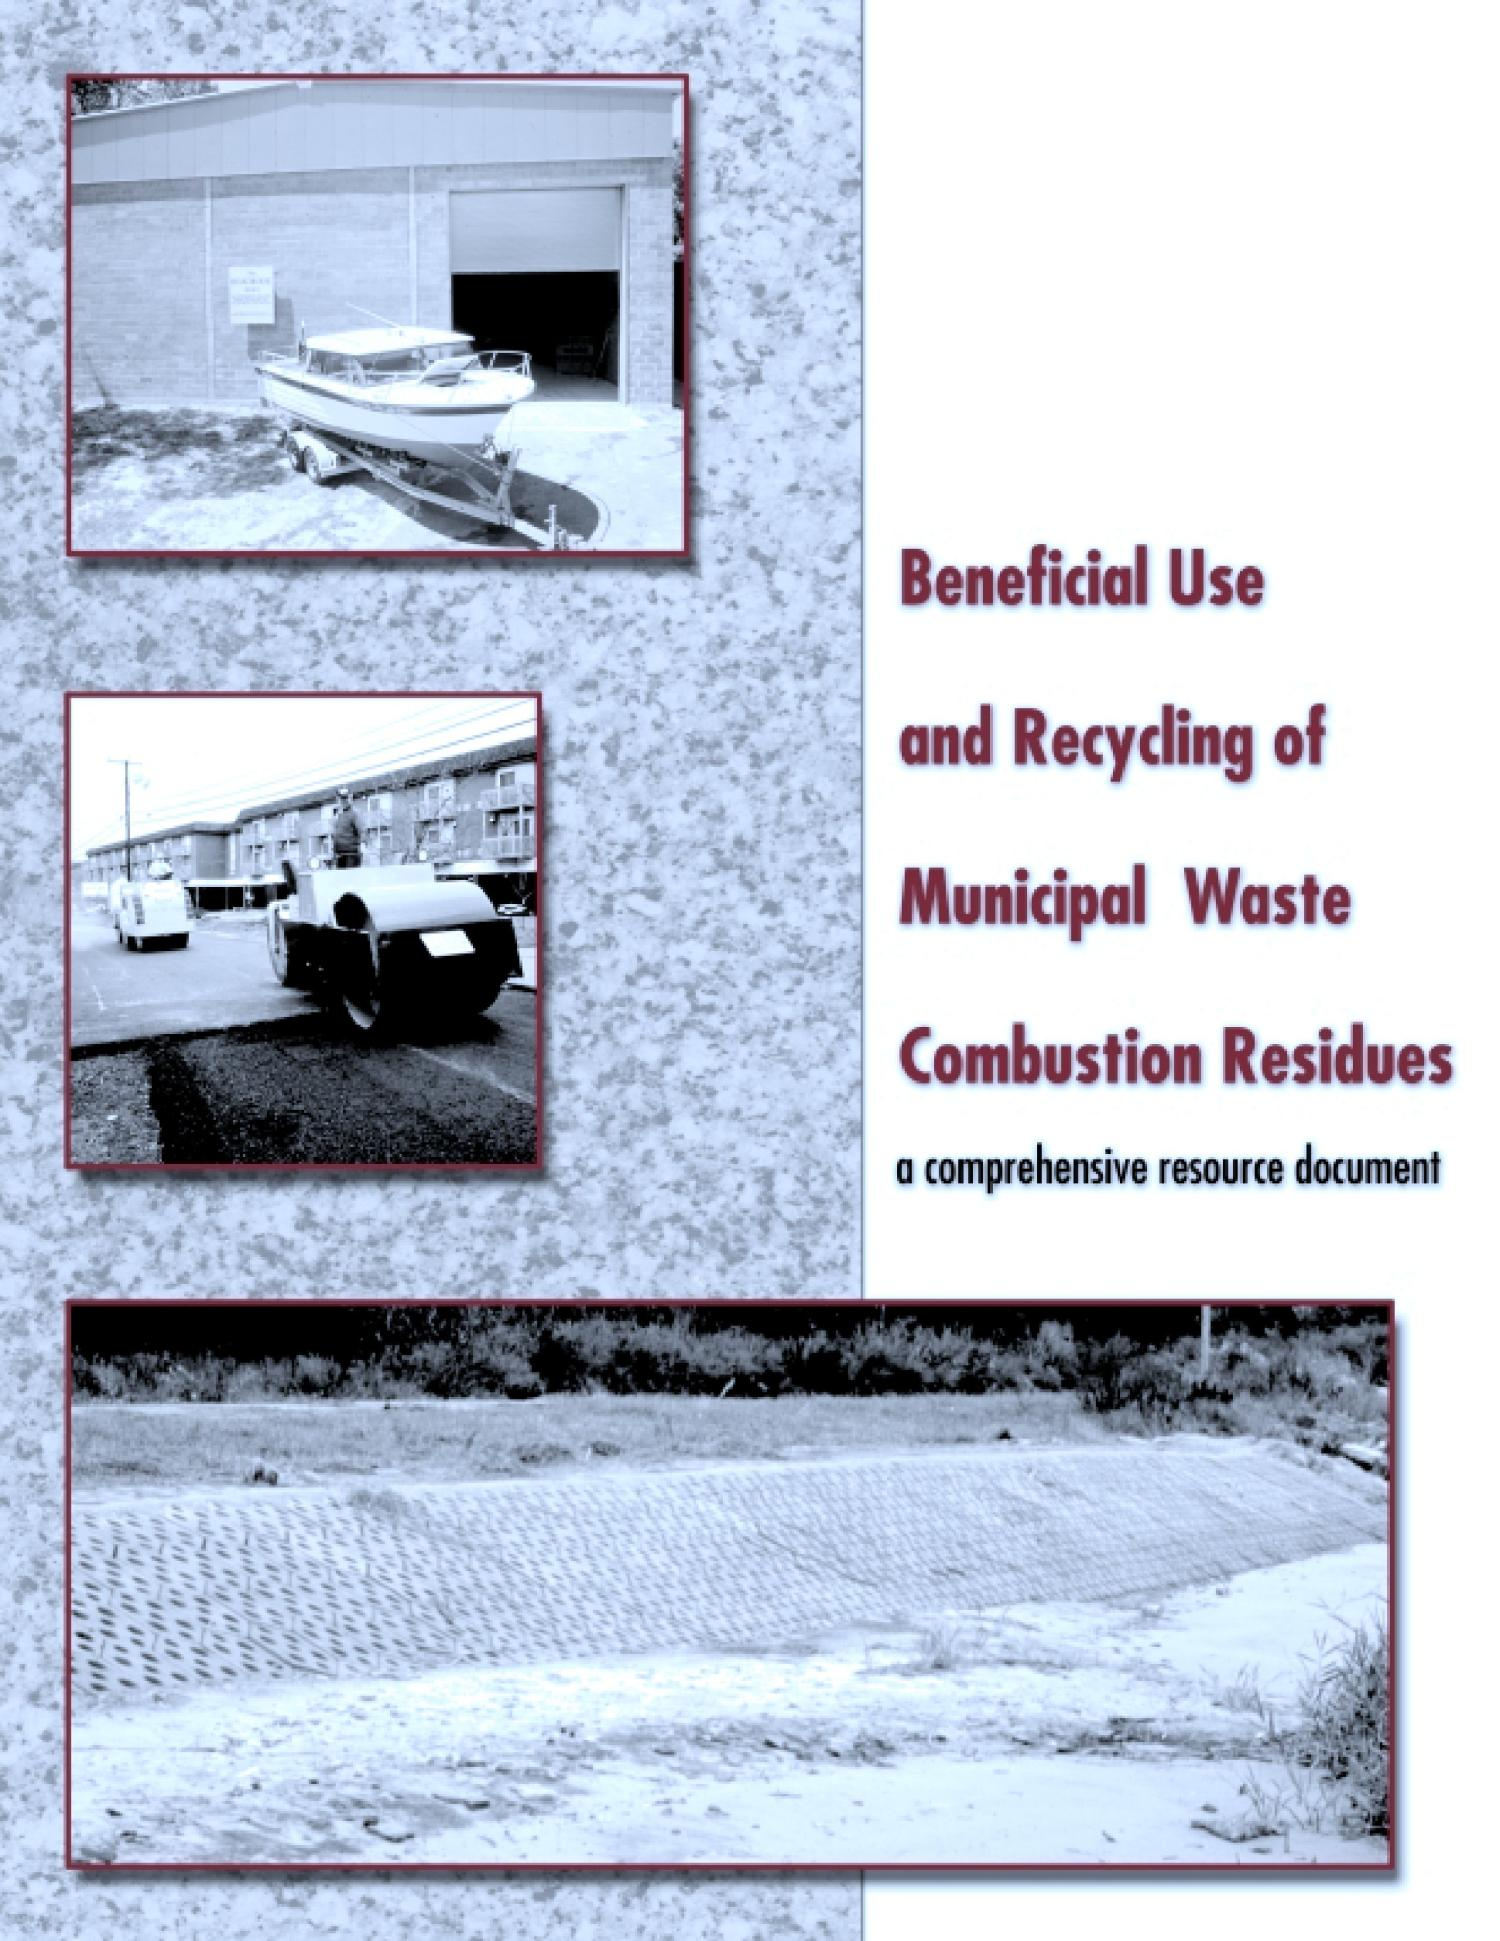 Beneficial Use and Recycling of Municipal Waste Combustion Residues - A Comprehensive Resource Document                                                                                                      [Sequence #]: 1 of 143